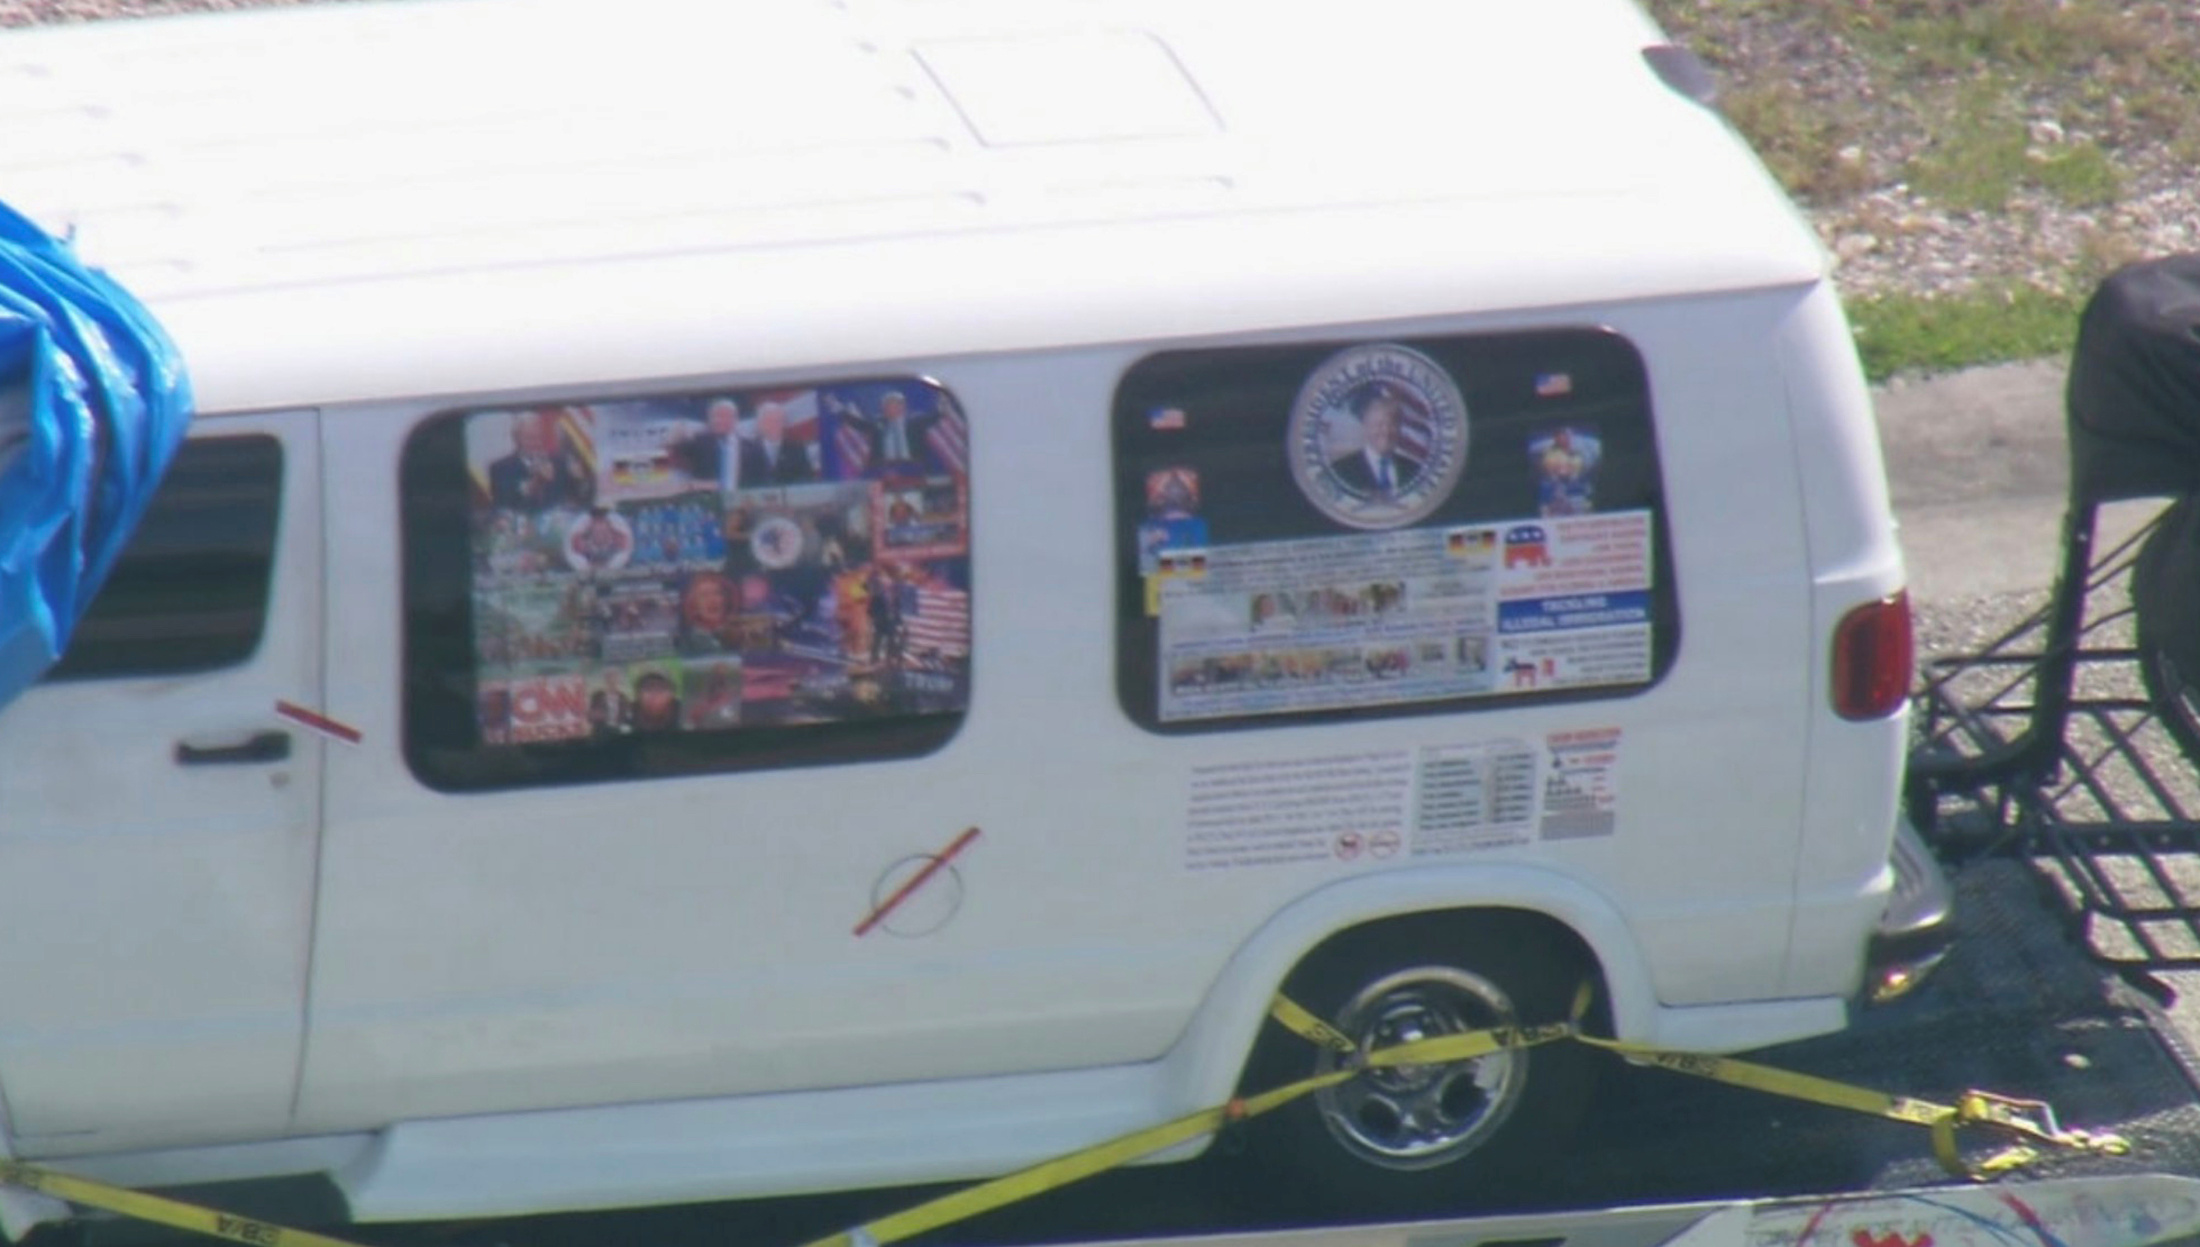 A van which was seized during an investigation into a series of parcel bombs is transported to an FBI facility in Miramar, Florida October 26, 2018 in a still image from video. WPLG/Local10.com/Handout via REUTERS